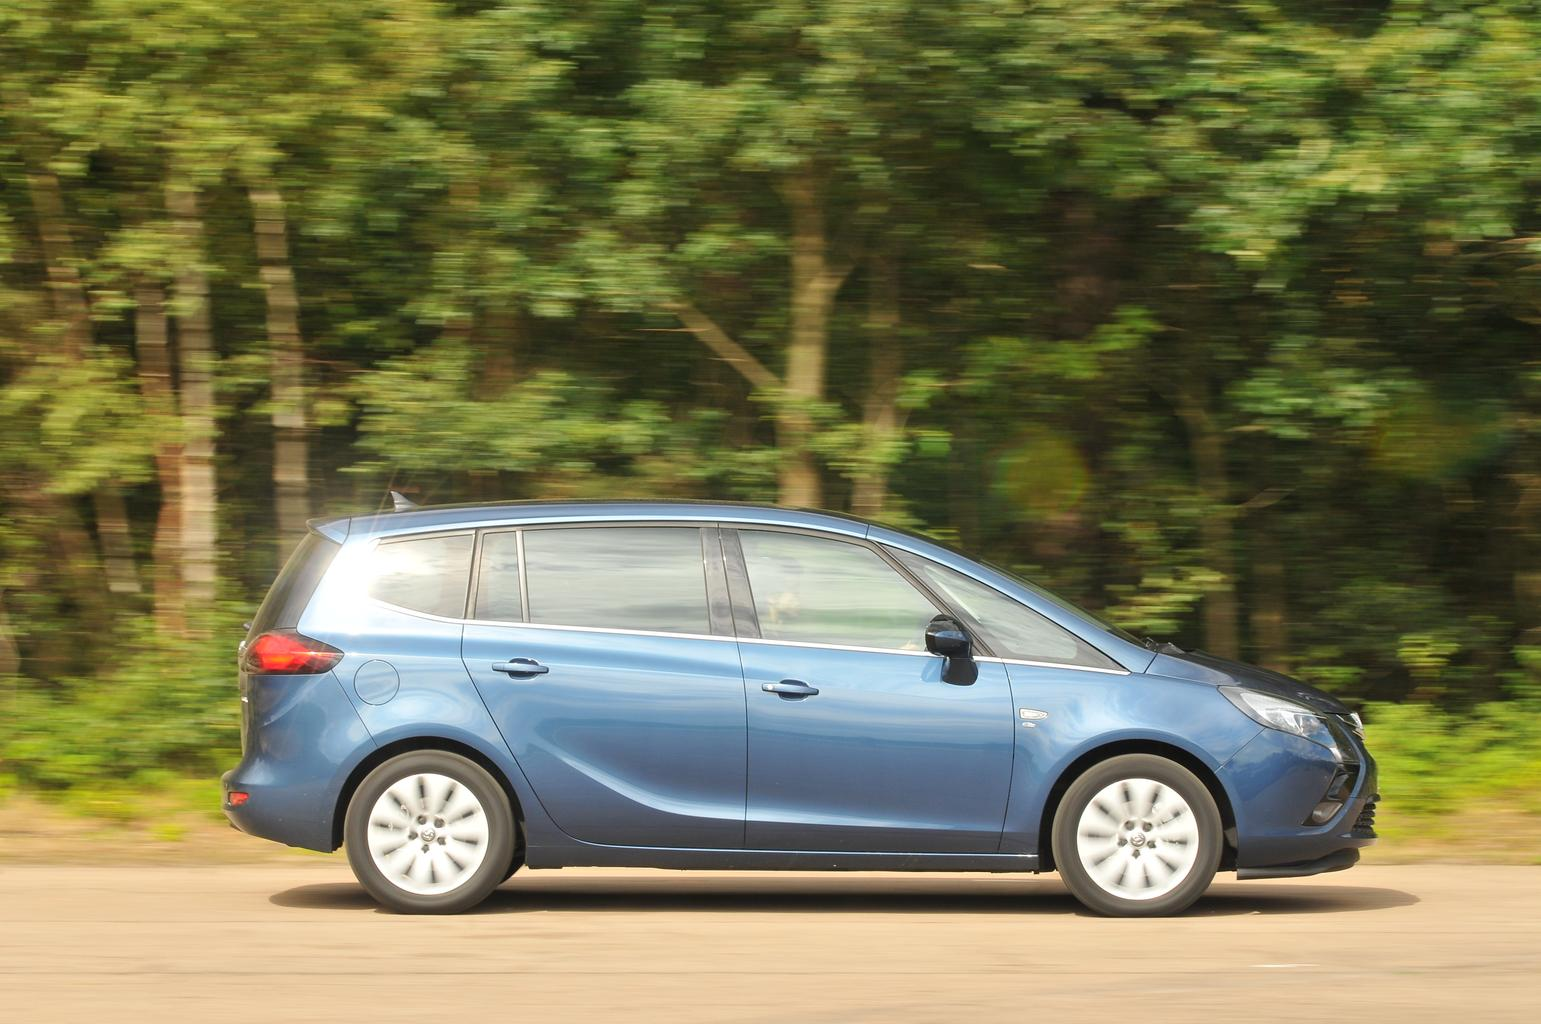 Used Ford S-Max vs Vauxhall Zafira Tourer